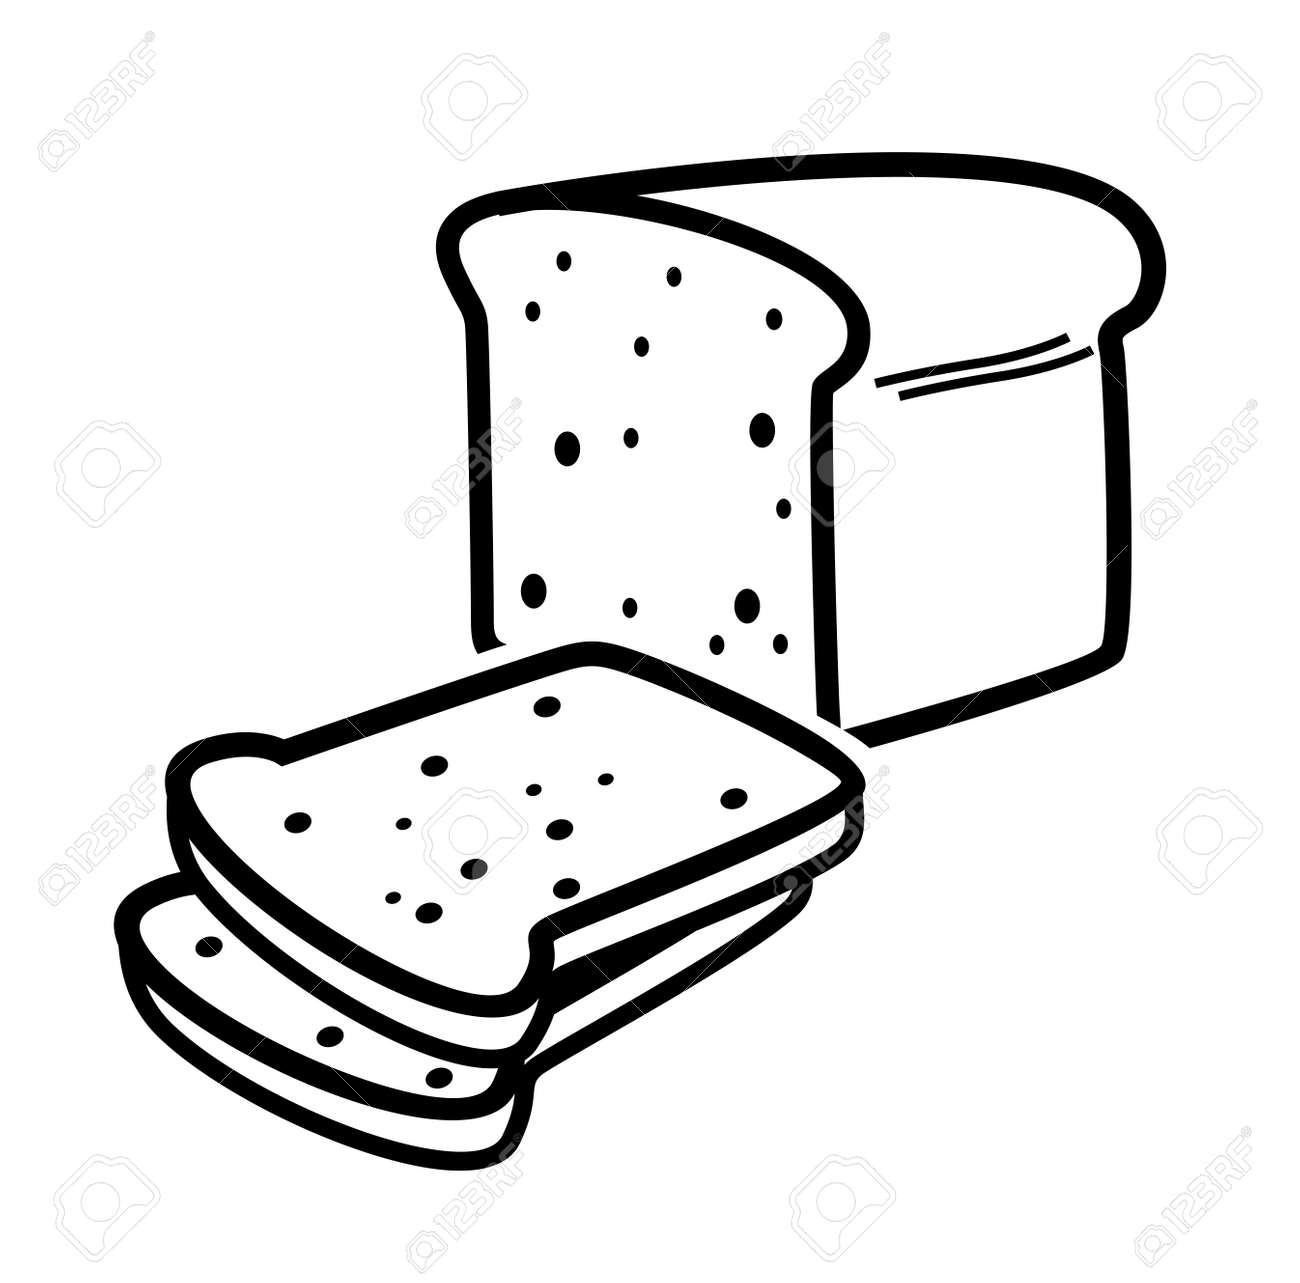 Loaf Clipart